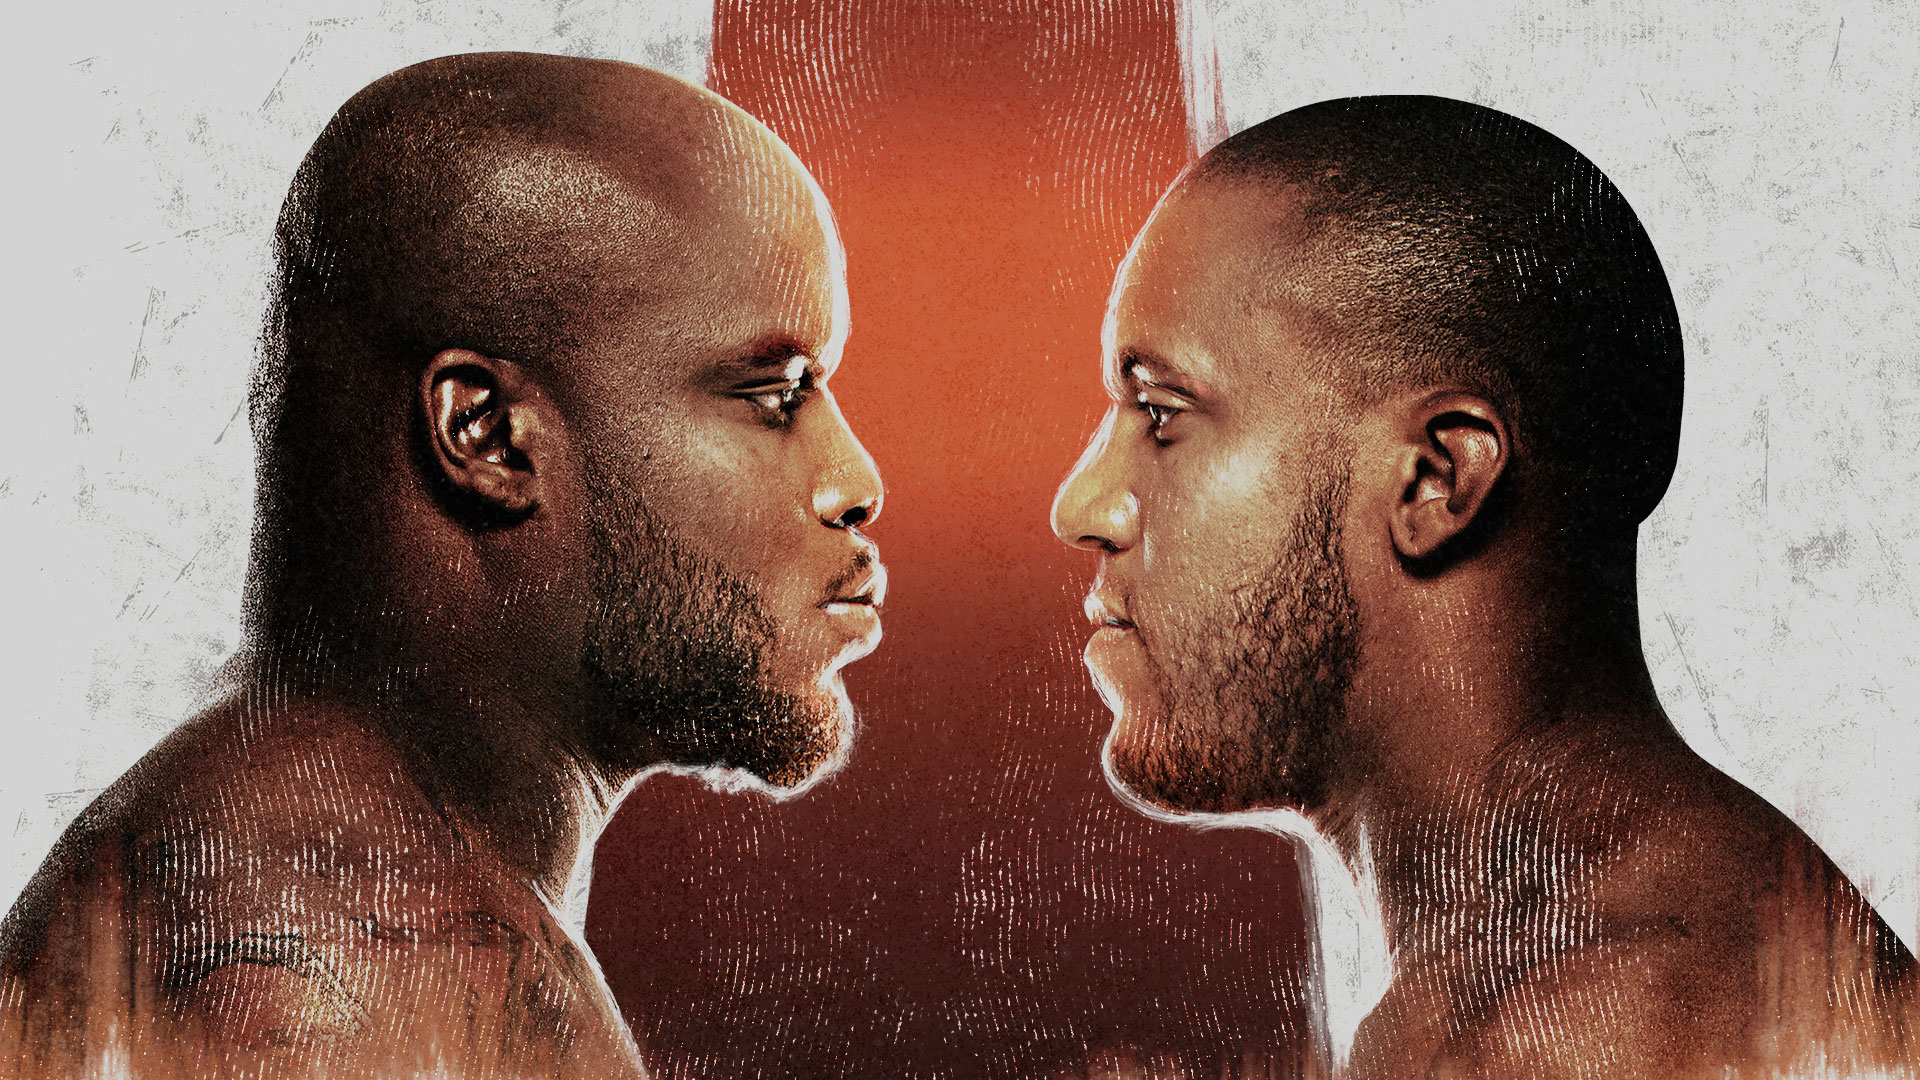 Derrick Lewis and Ciryl Gane face off for the UFC interim heavyweight title August 7 live on Pay Per View